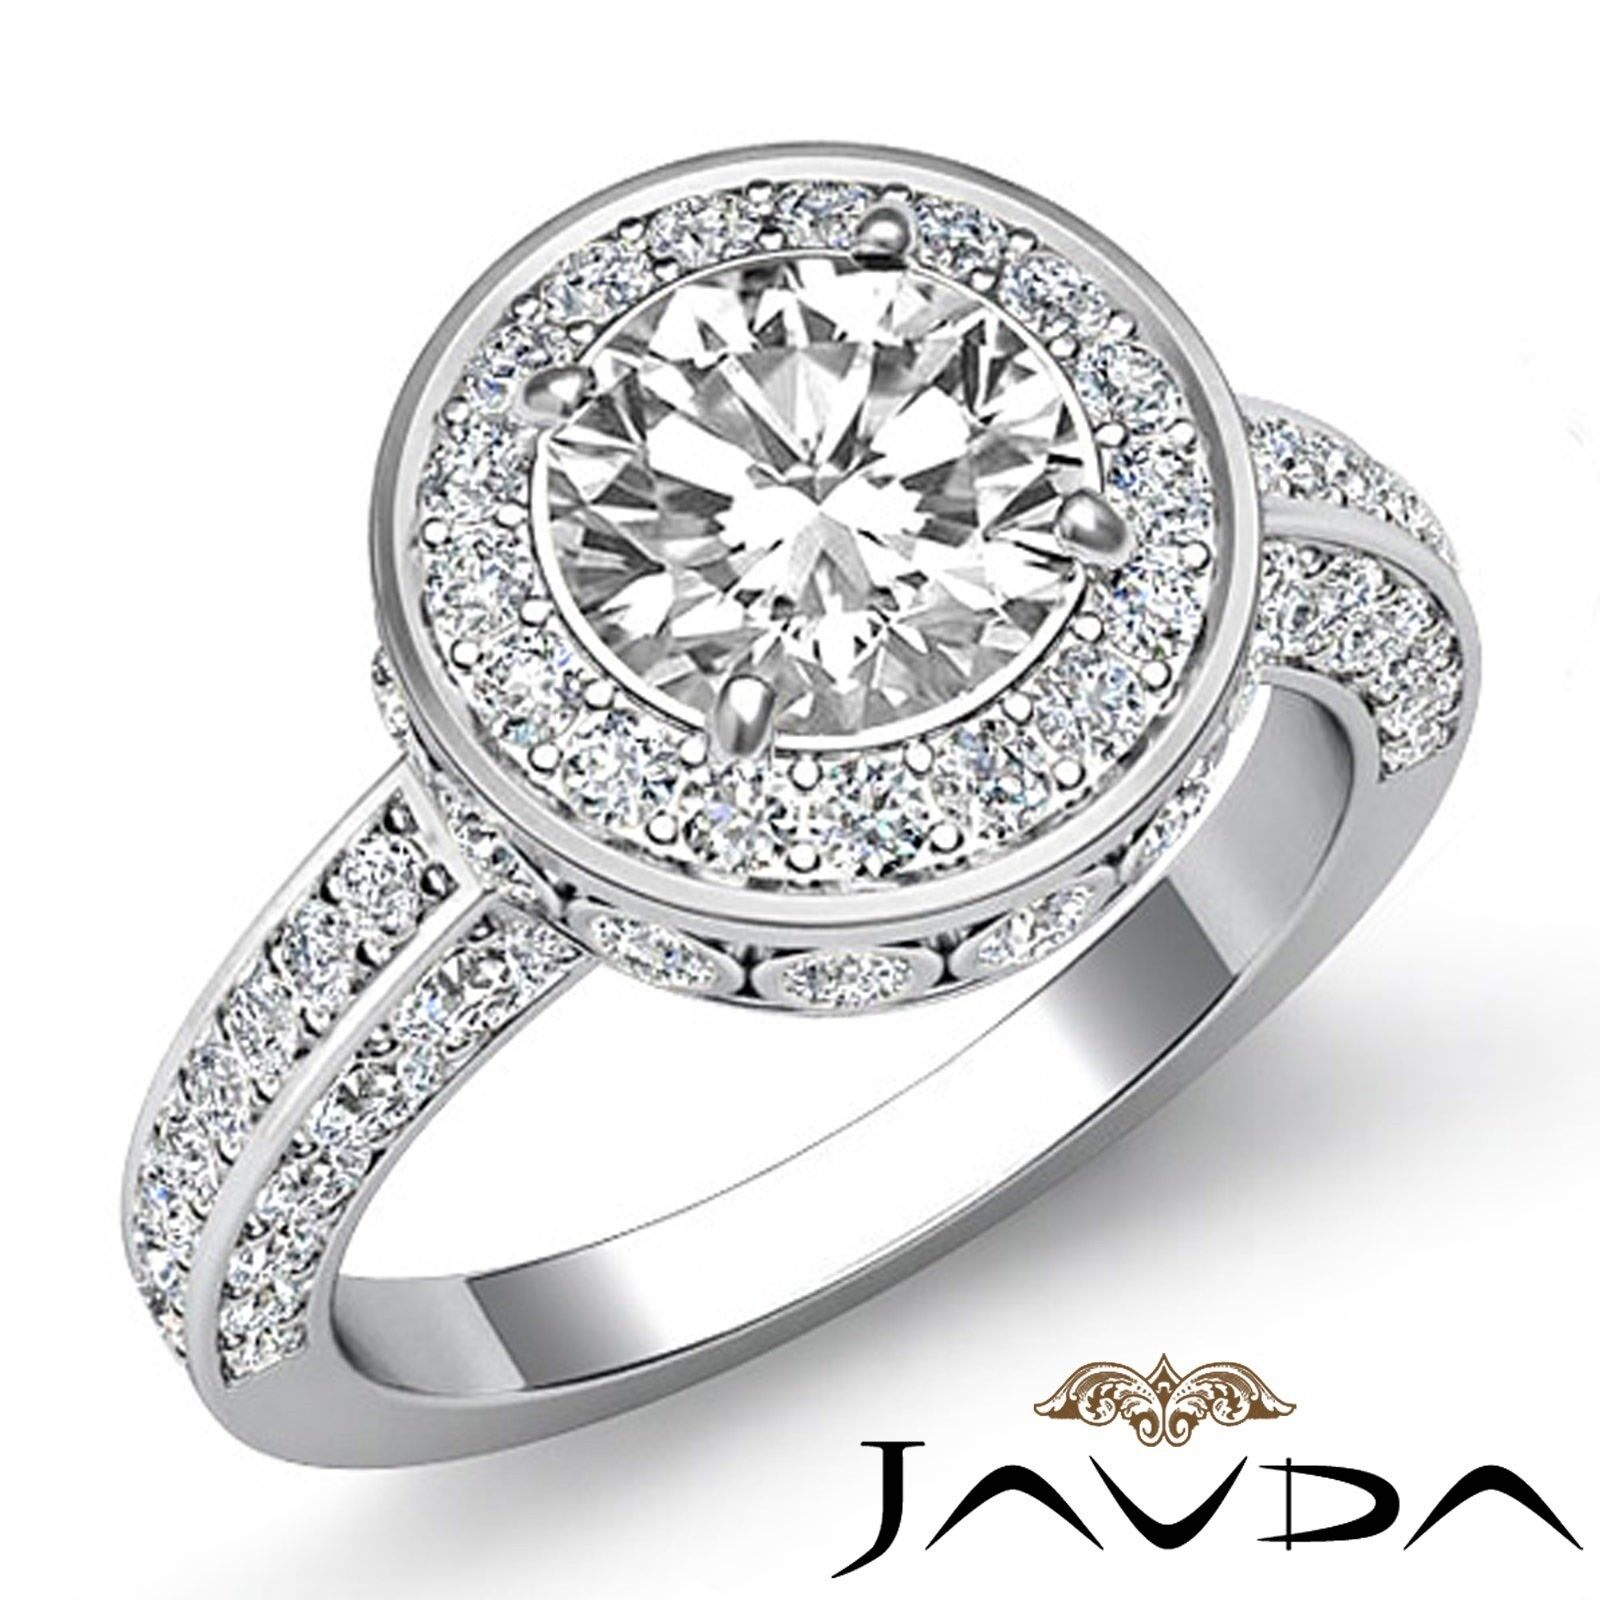 2.1ctw Halo Bezel Side Stone Round Diamond Engagement Ring GIA E-VVS1 White Gold